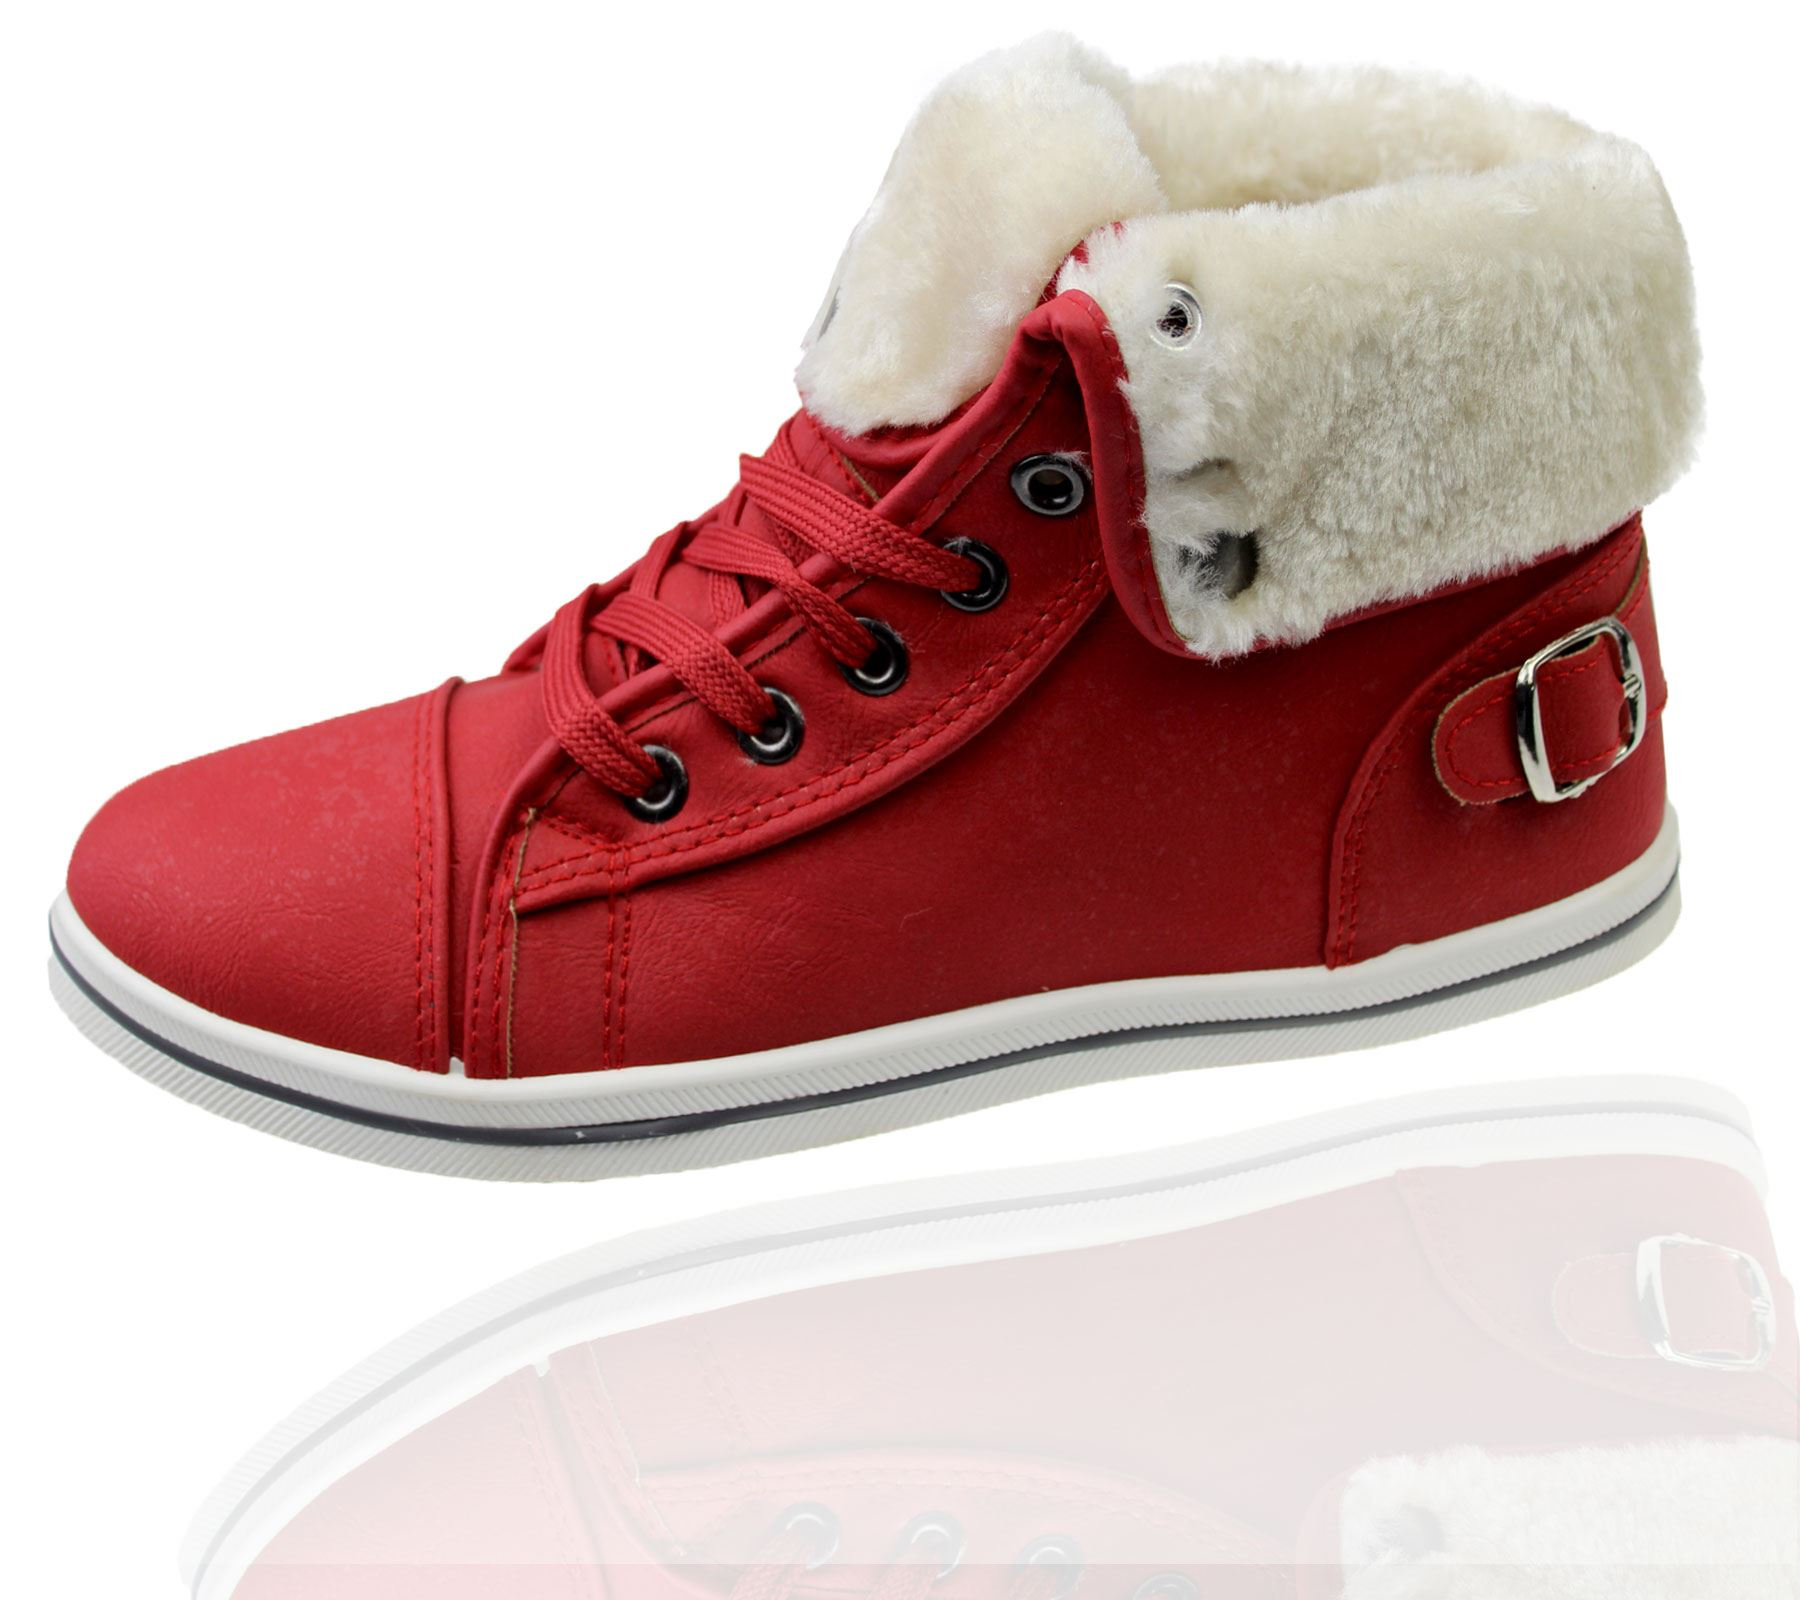 Girls-Boots-Womens-Warm-Lined-High-Top-Ankle-Trainer-Ladies-Winter-Shoes-Size miniatura 50